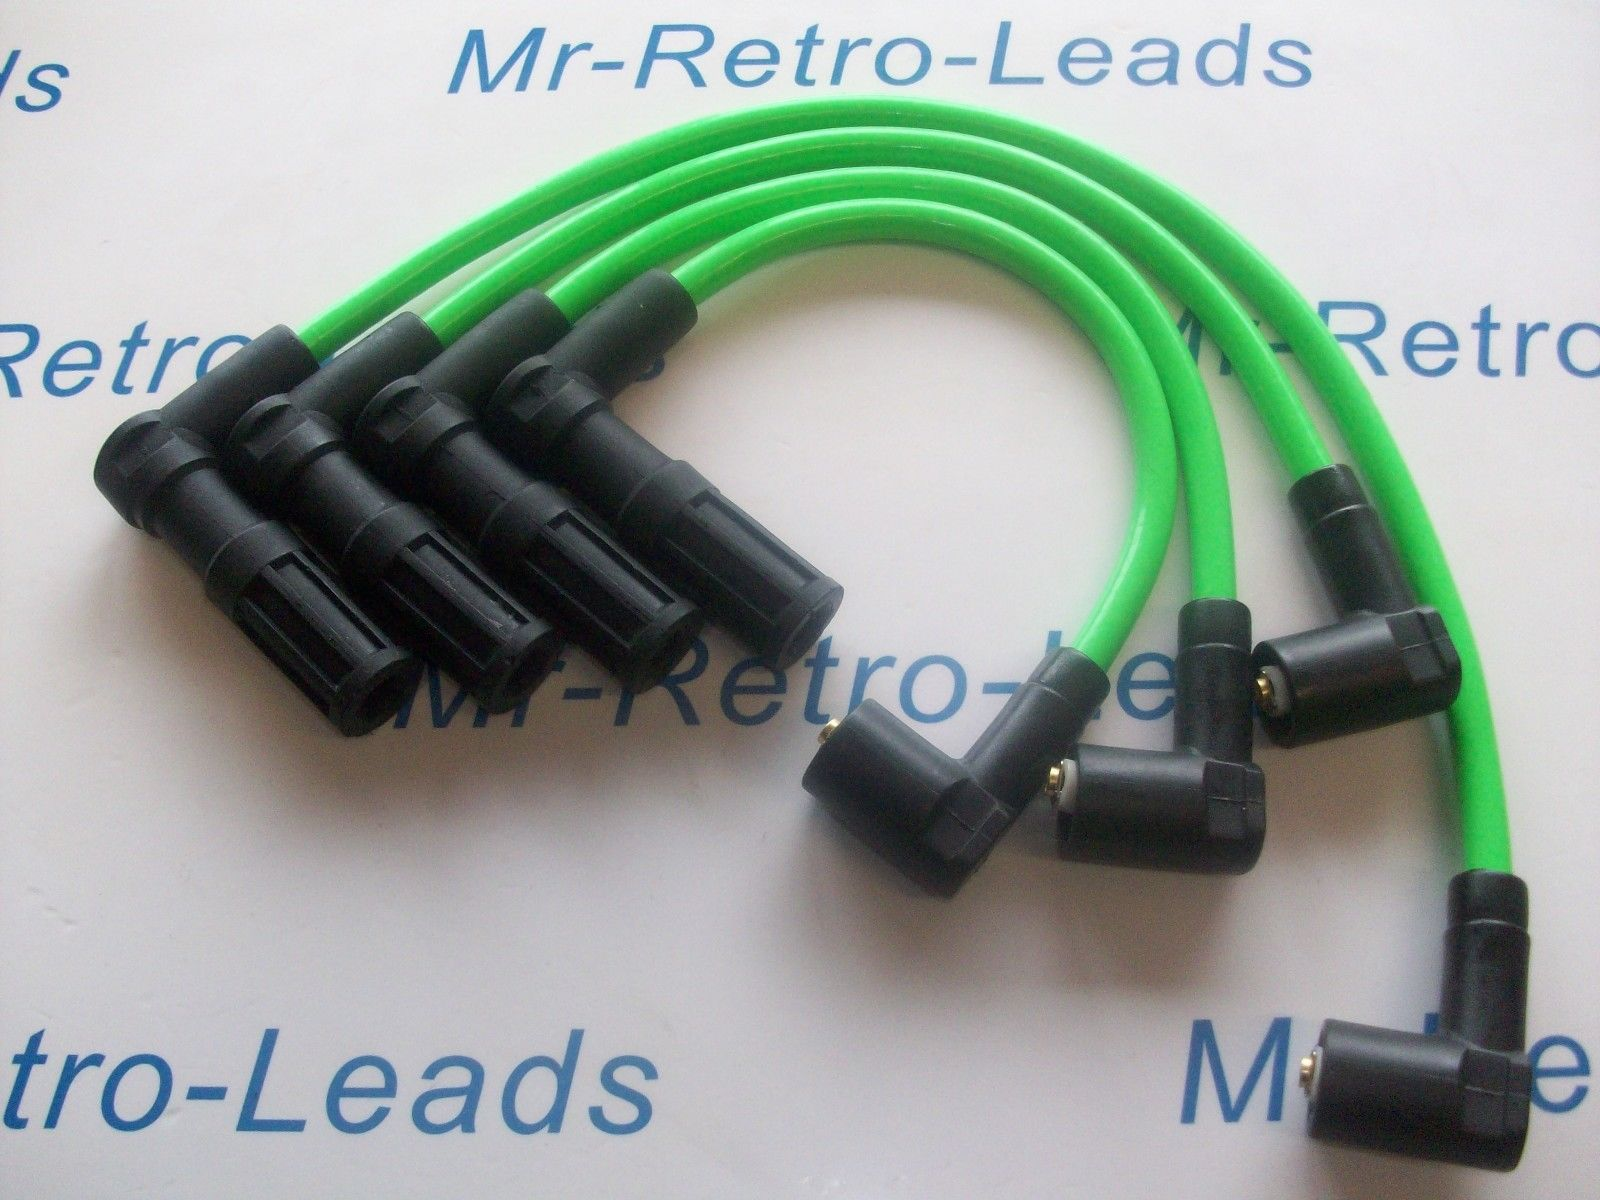 Green 8mm Ignition Leads For Fiat Punto 1 4 Gt Turbo Facet As Kawasaki  Green Ht